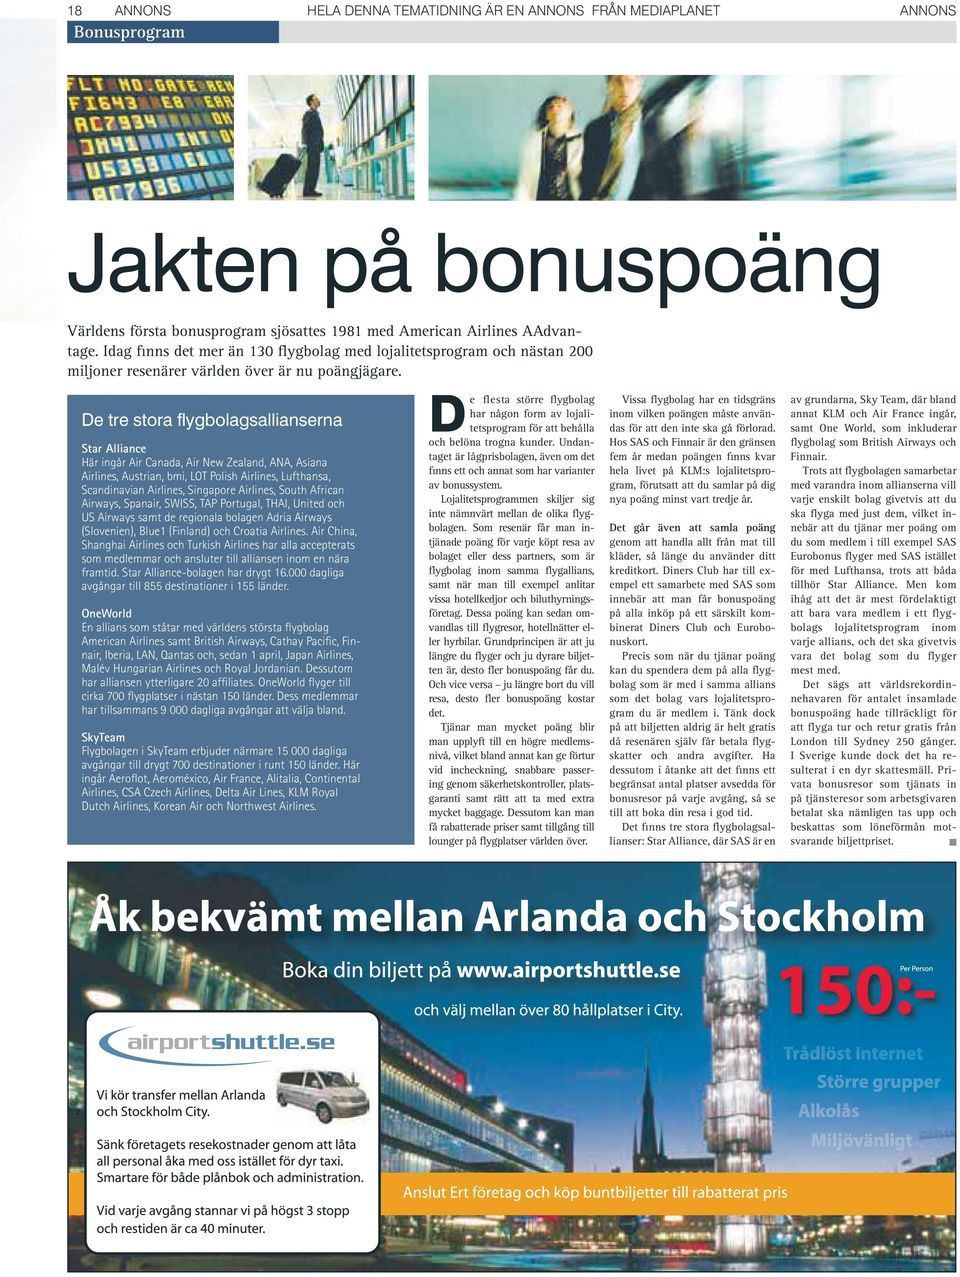 De tre stora flygbolagsallianserna Star Alliance Här ingår Air Canada, Air New Zealand, ANA, Asiana Airlines, Austrian, bmi, LOT Polish Airlines, Lufthansa, Scandinavian Airlines, Singapore Airlines,